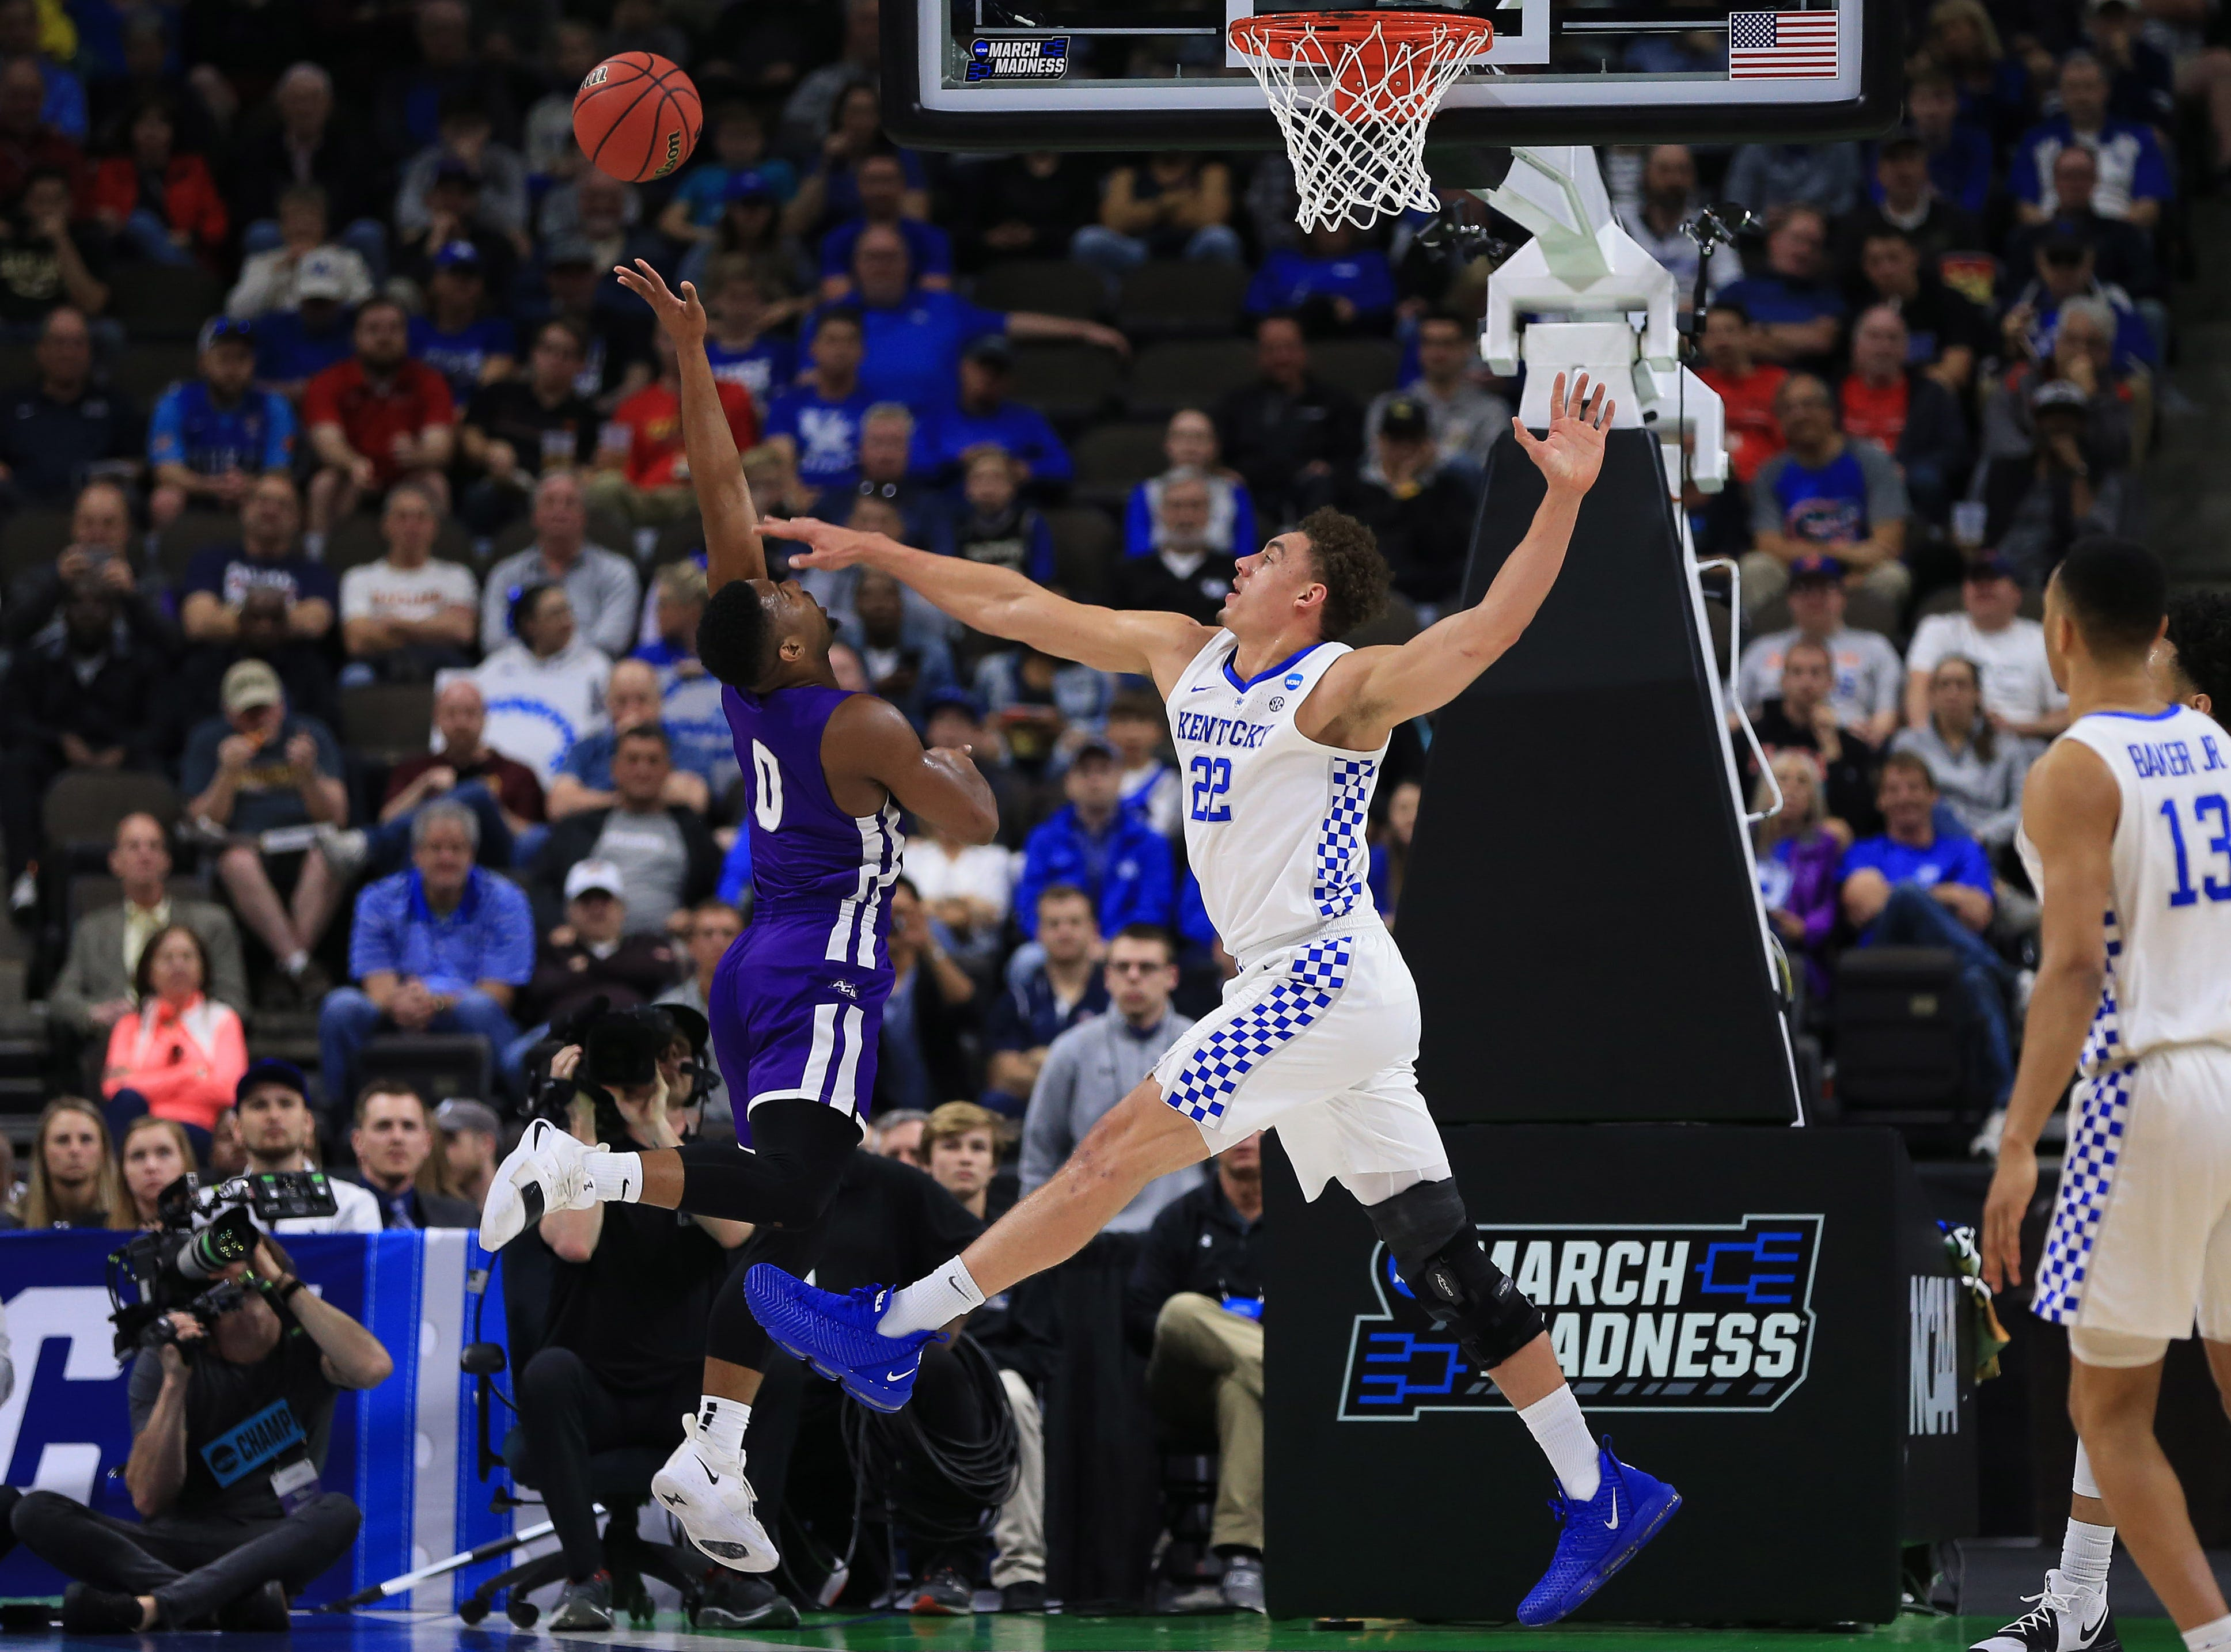 Mar 21, 2019; Jacksonville, FL, USA; Kentucky Wildcats forward Reid Travis (22) blocks a shot by Abilene Christian Wildcats guard Jaylen Franklin (0) during the first half in the first round of the 2019 NCAA Tournament at Jacksonville Veterans Memorial Arena. Mandatory Credit: Matt Stamey-USA TODAY Sports